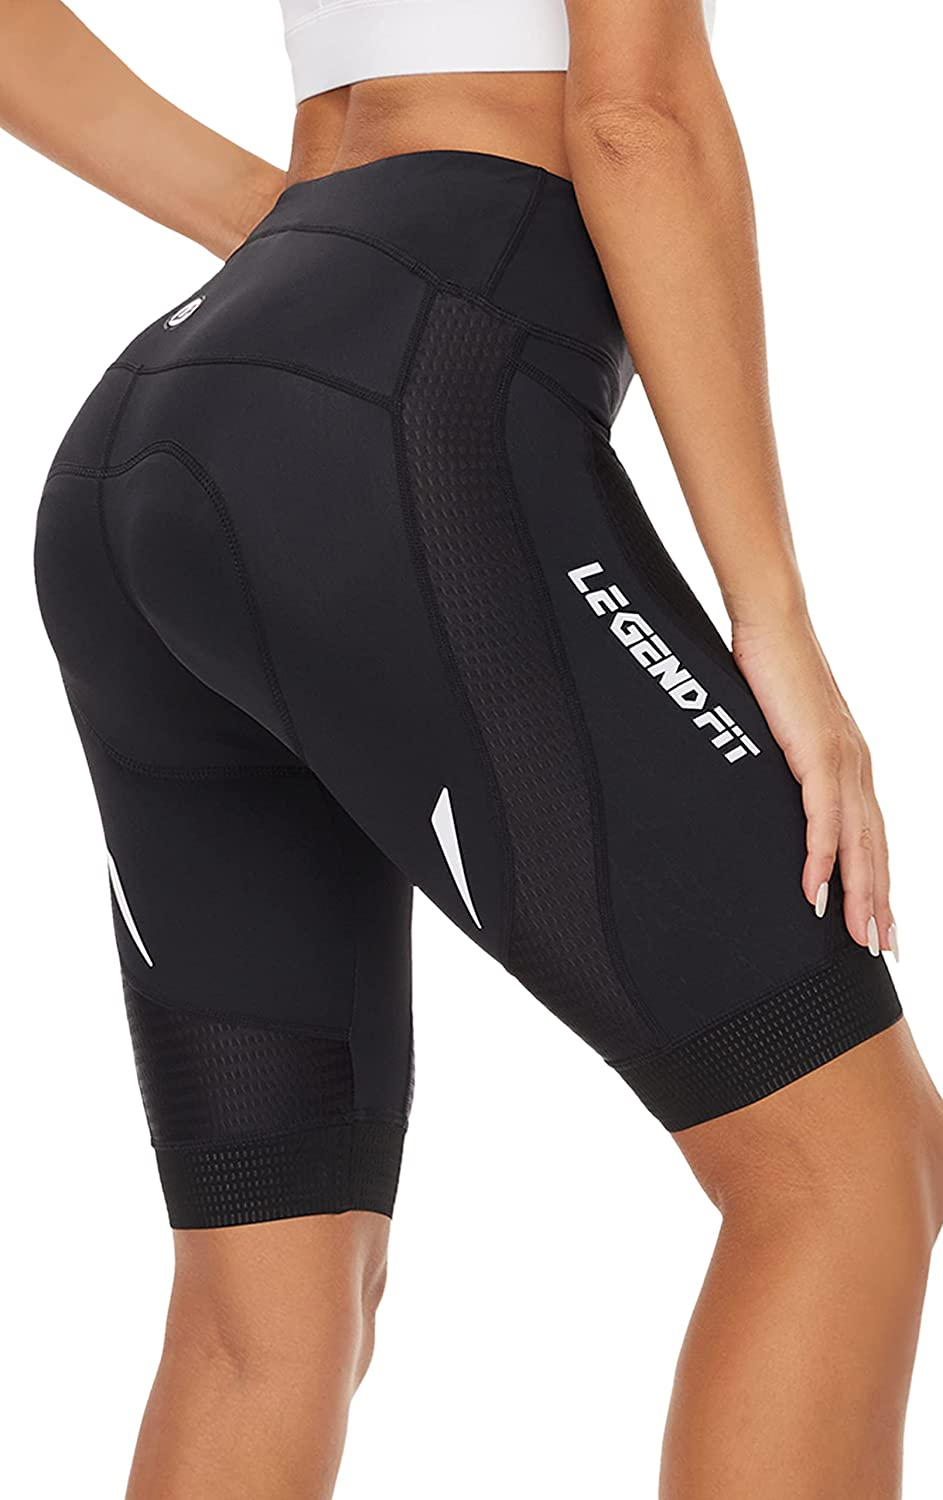 LEGENDFIT Women's Bike Shorts 3D Padded Riding All items in the store Columbus Mall Bicycle P Cycling